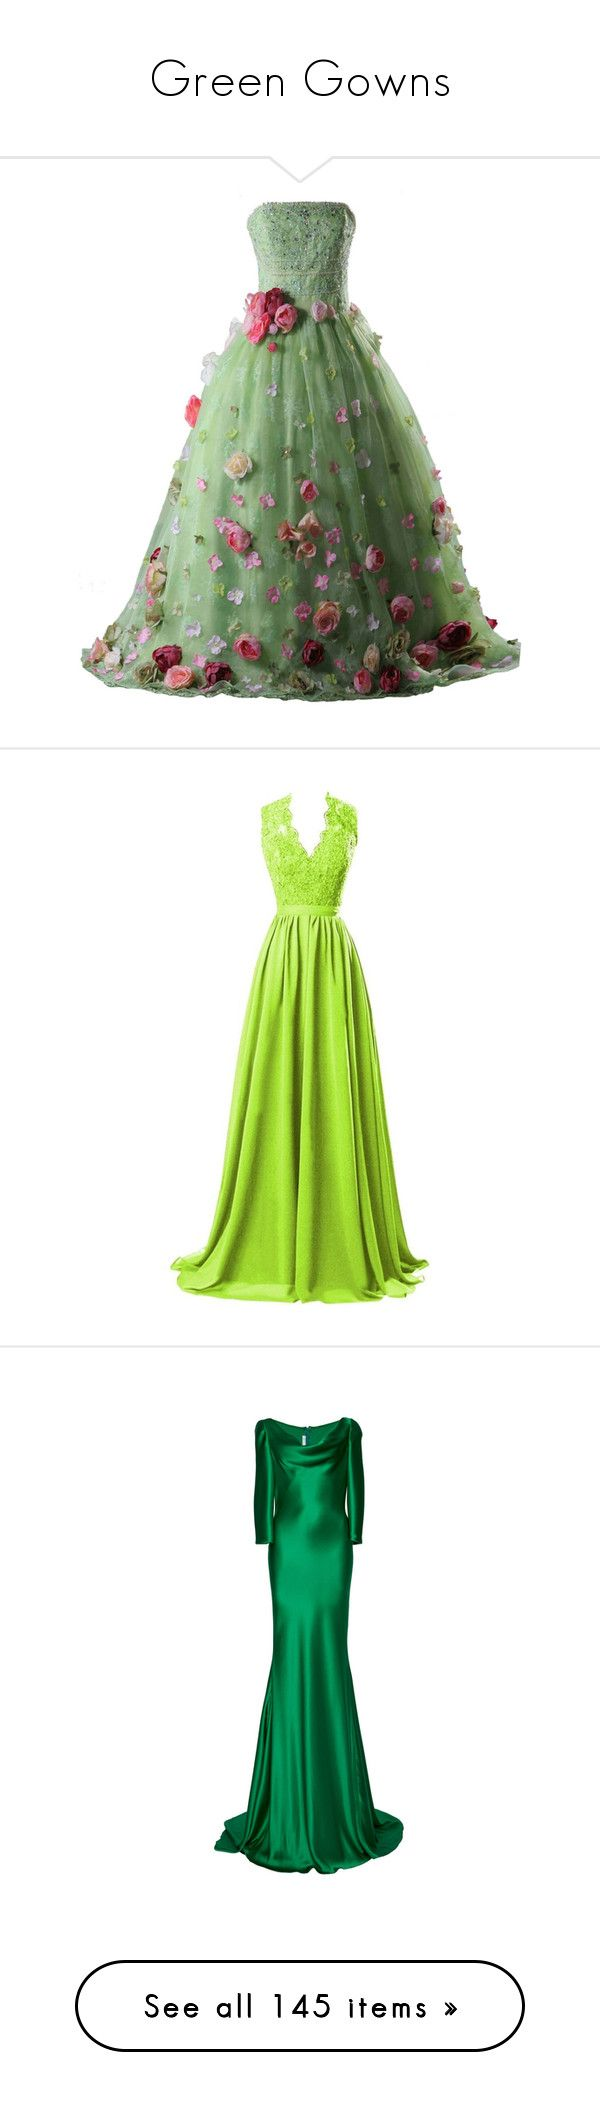 """""""Green Gowns"""" by srta-sr ❤ liked on Polyvore featuring smrgowns, dresses, gowns, doll clothes, flower print dress, green evening dresses, floral print evening gown, quinceanera dresses, floral gown and gown"""